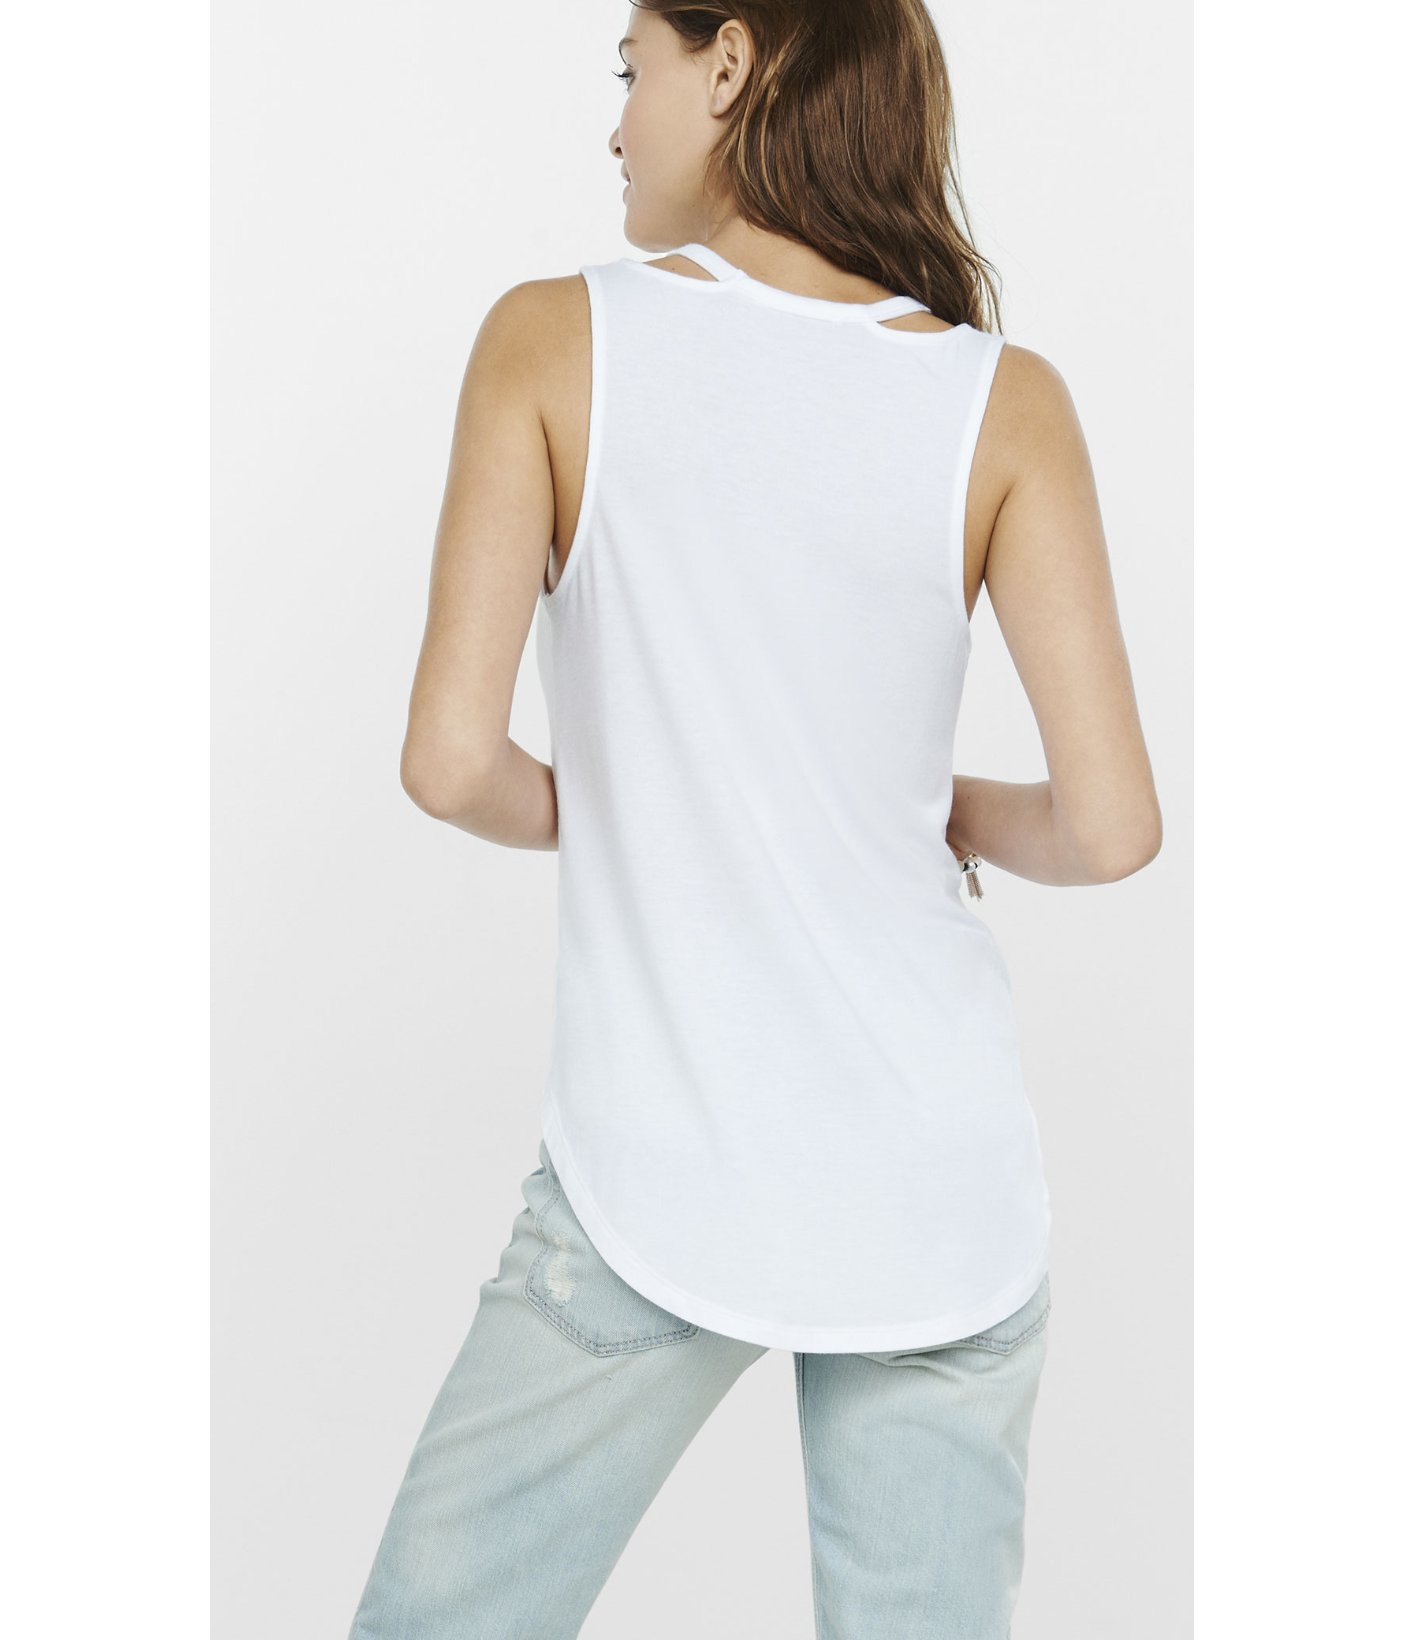 5668ae6f60 Express One Eleven Cut-out V-neck Tank in White - Lyst